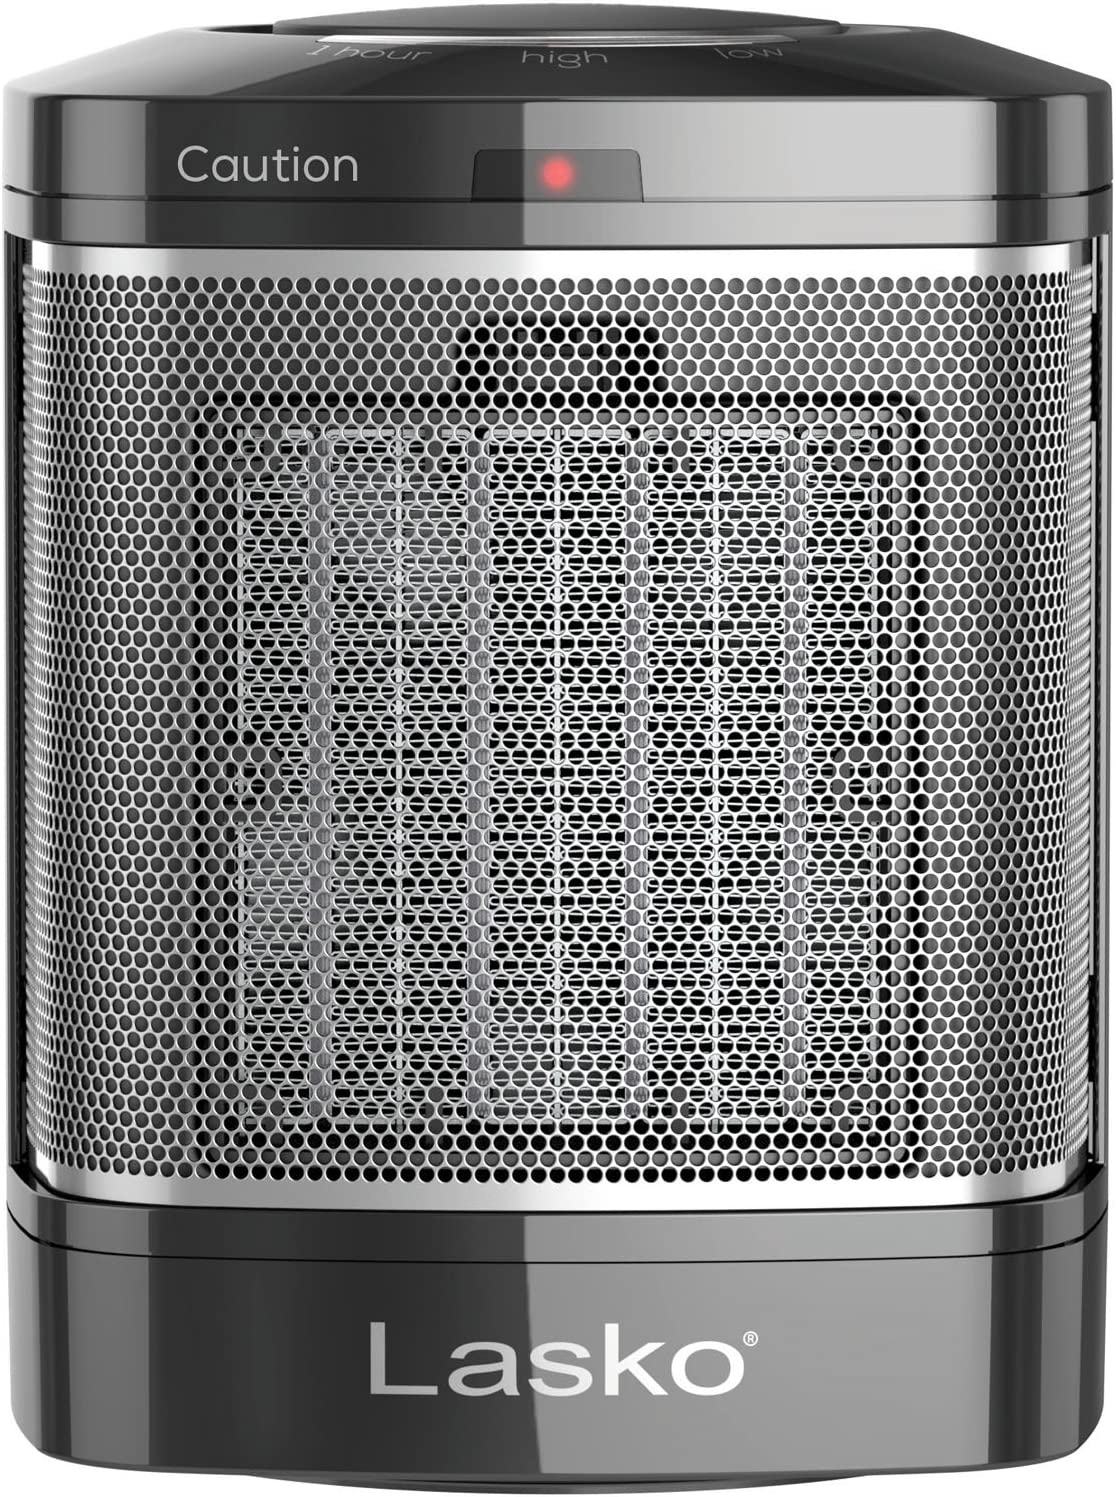 Lasko Heating Space Heater, Black